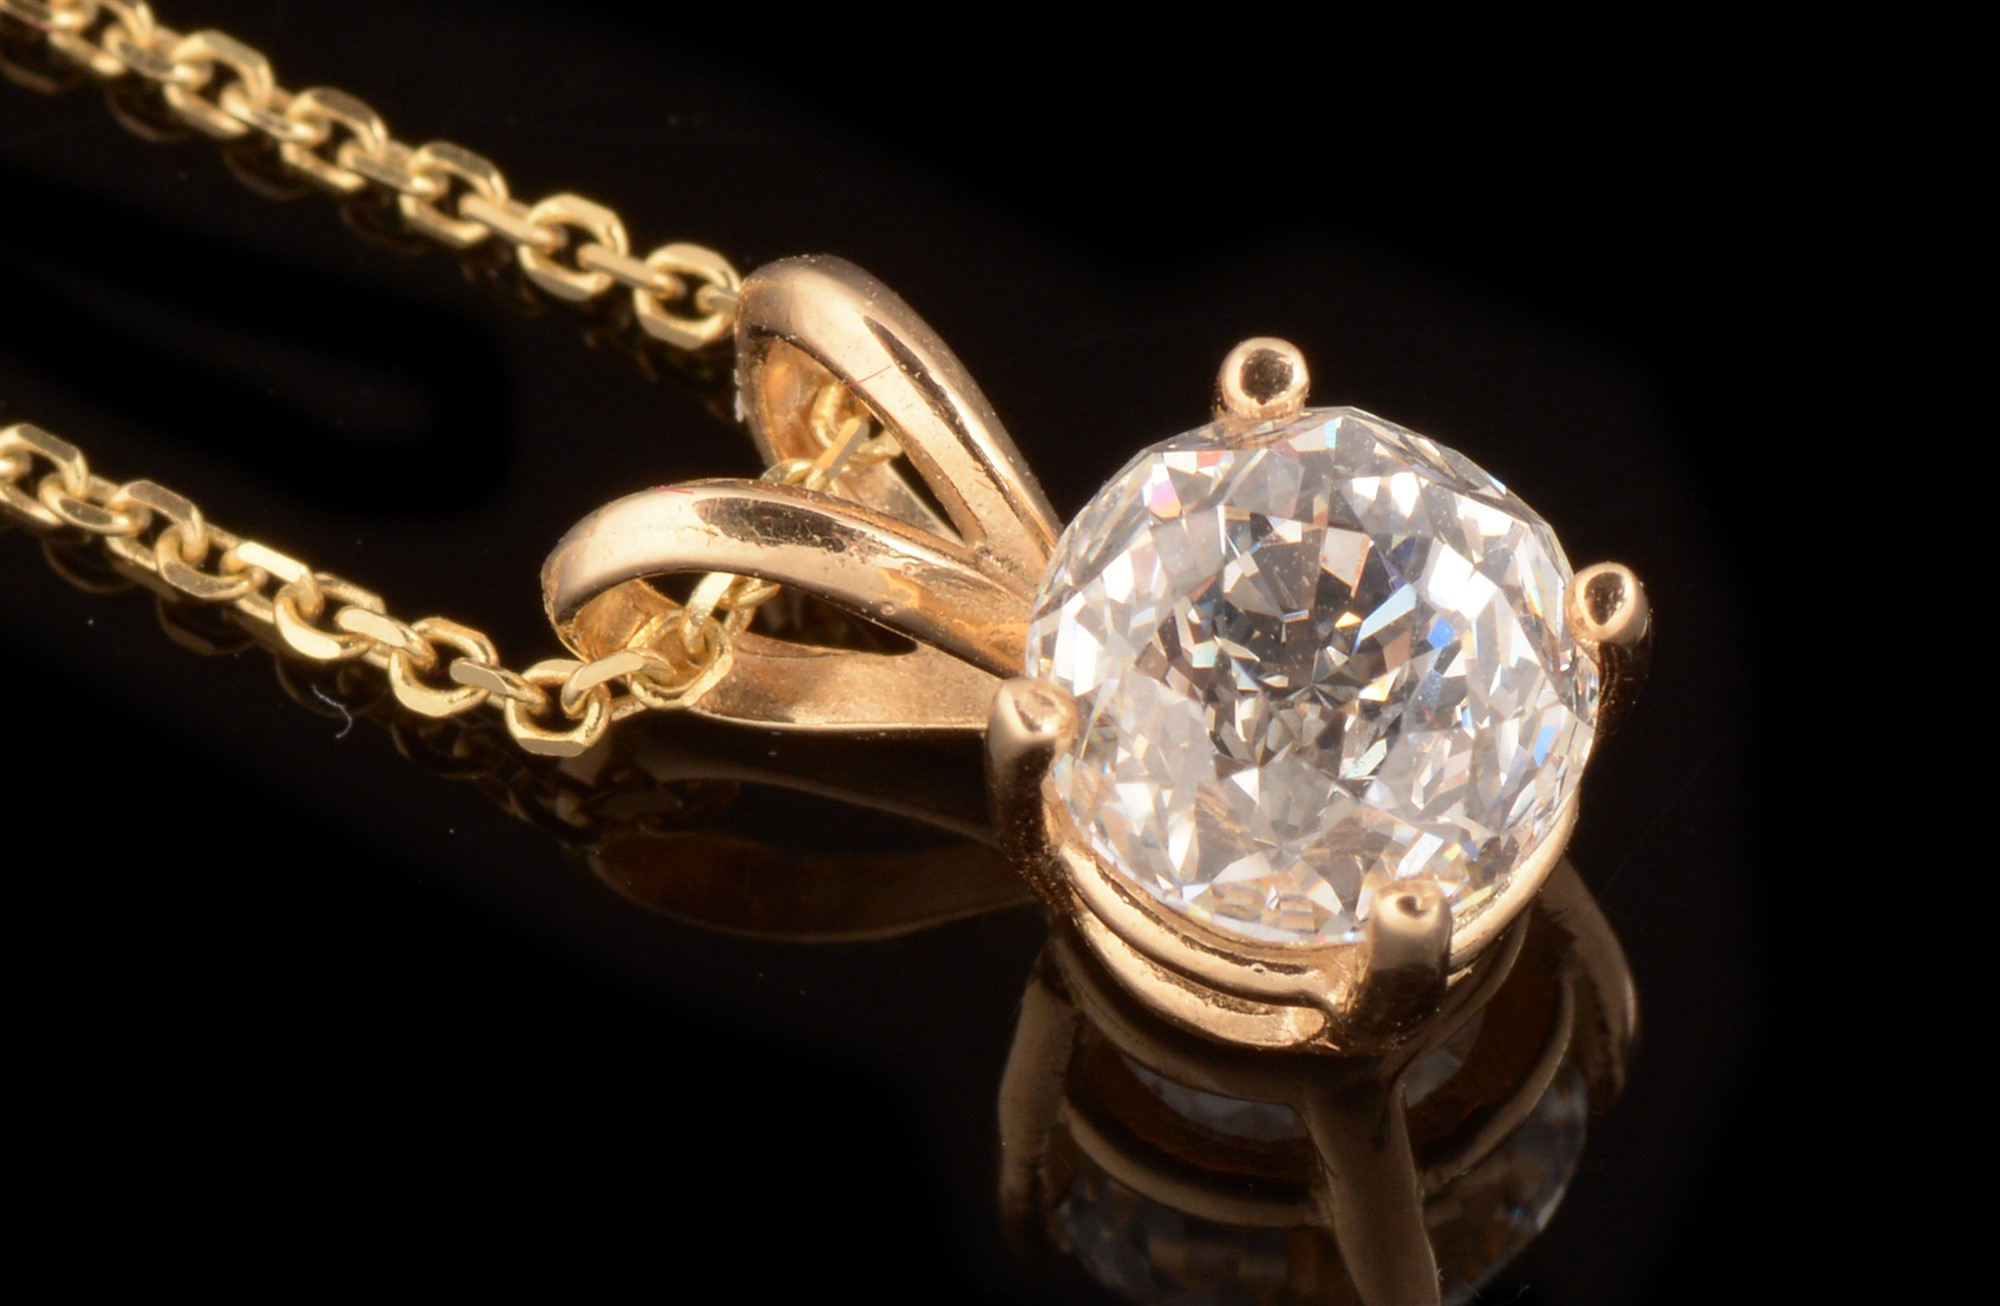 Lot 490 - 1.64 carat internally flawless diamond pendant